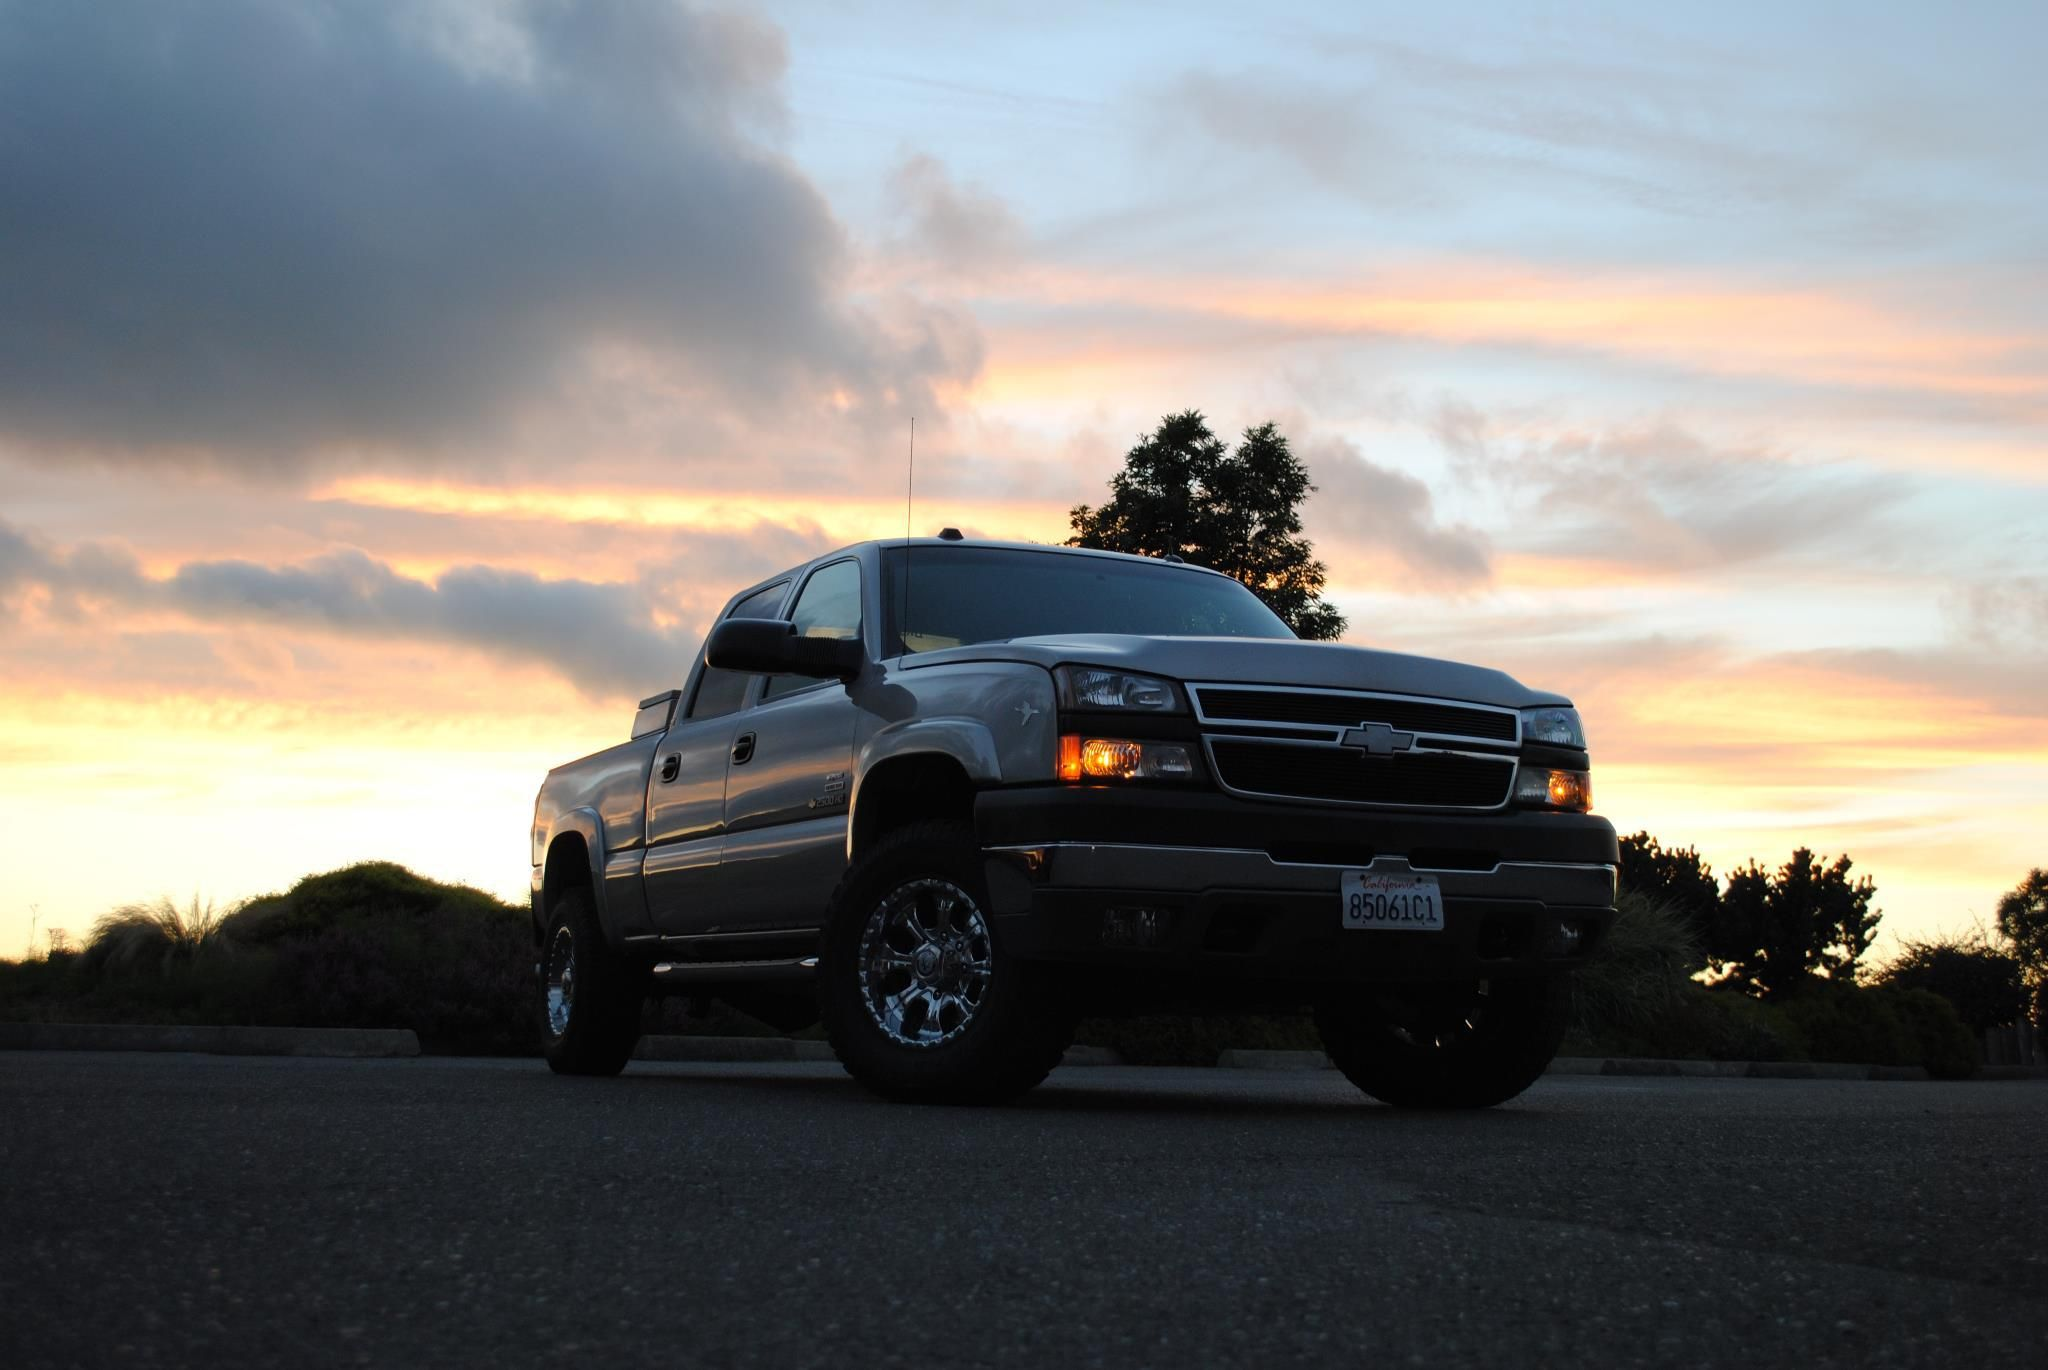 Live like you're on the top of the world. ChevyTrucks